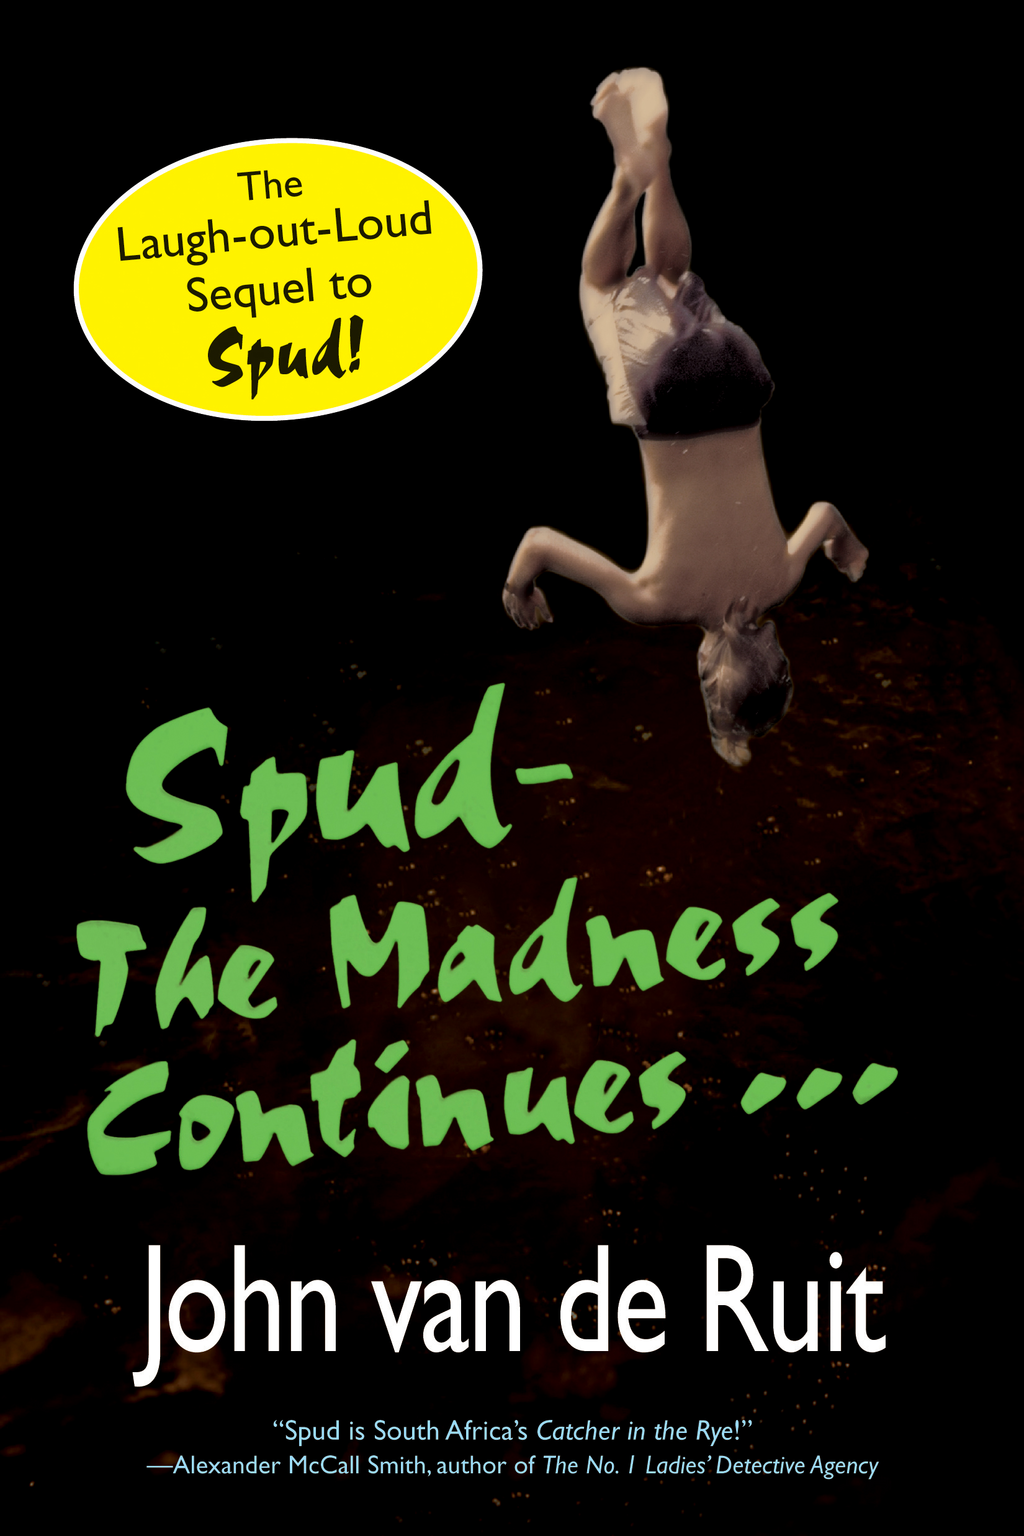 Spud-The Madness Continues By: John van de Ruit